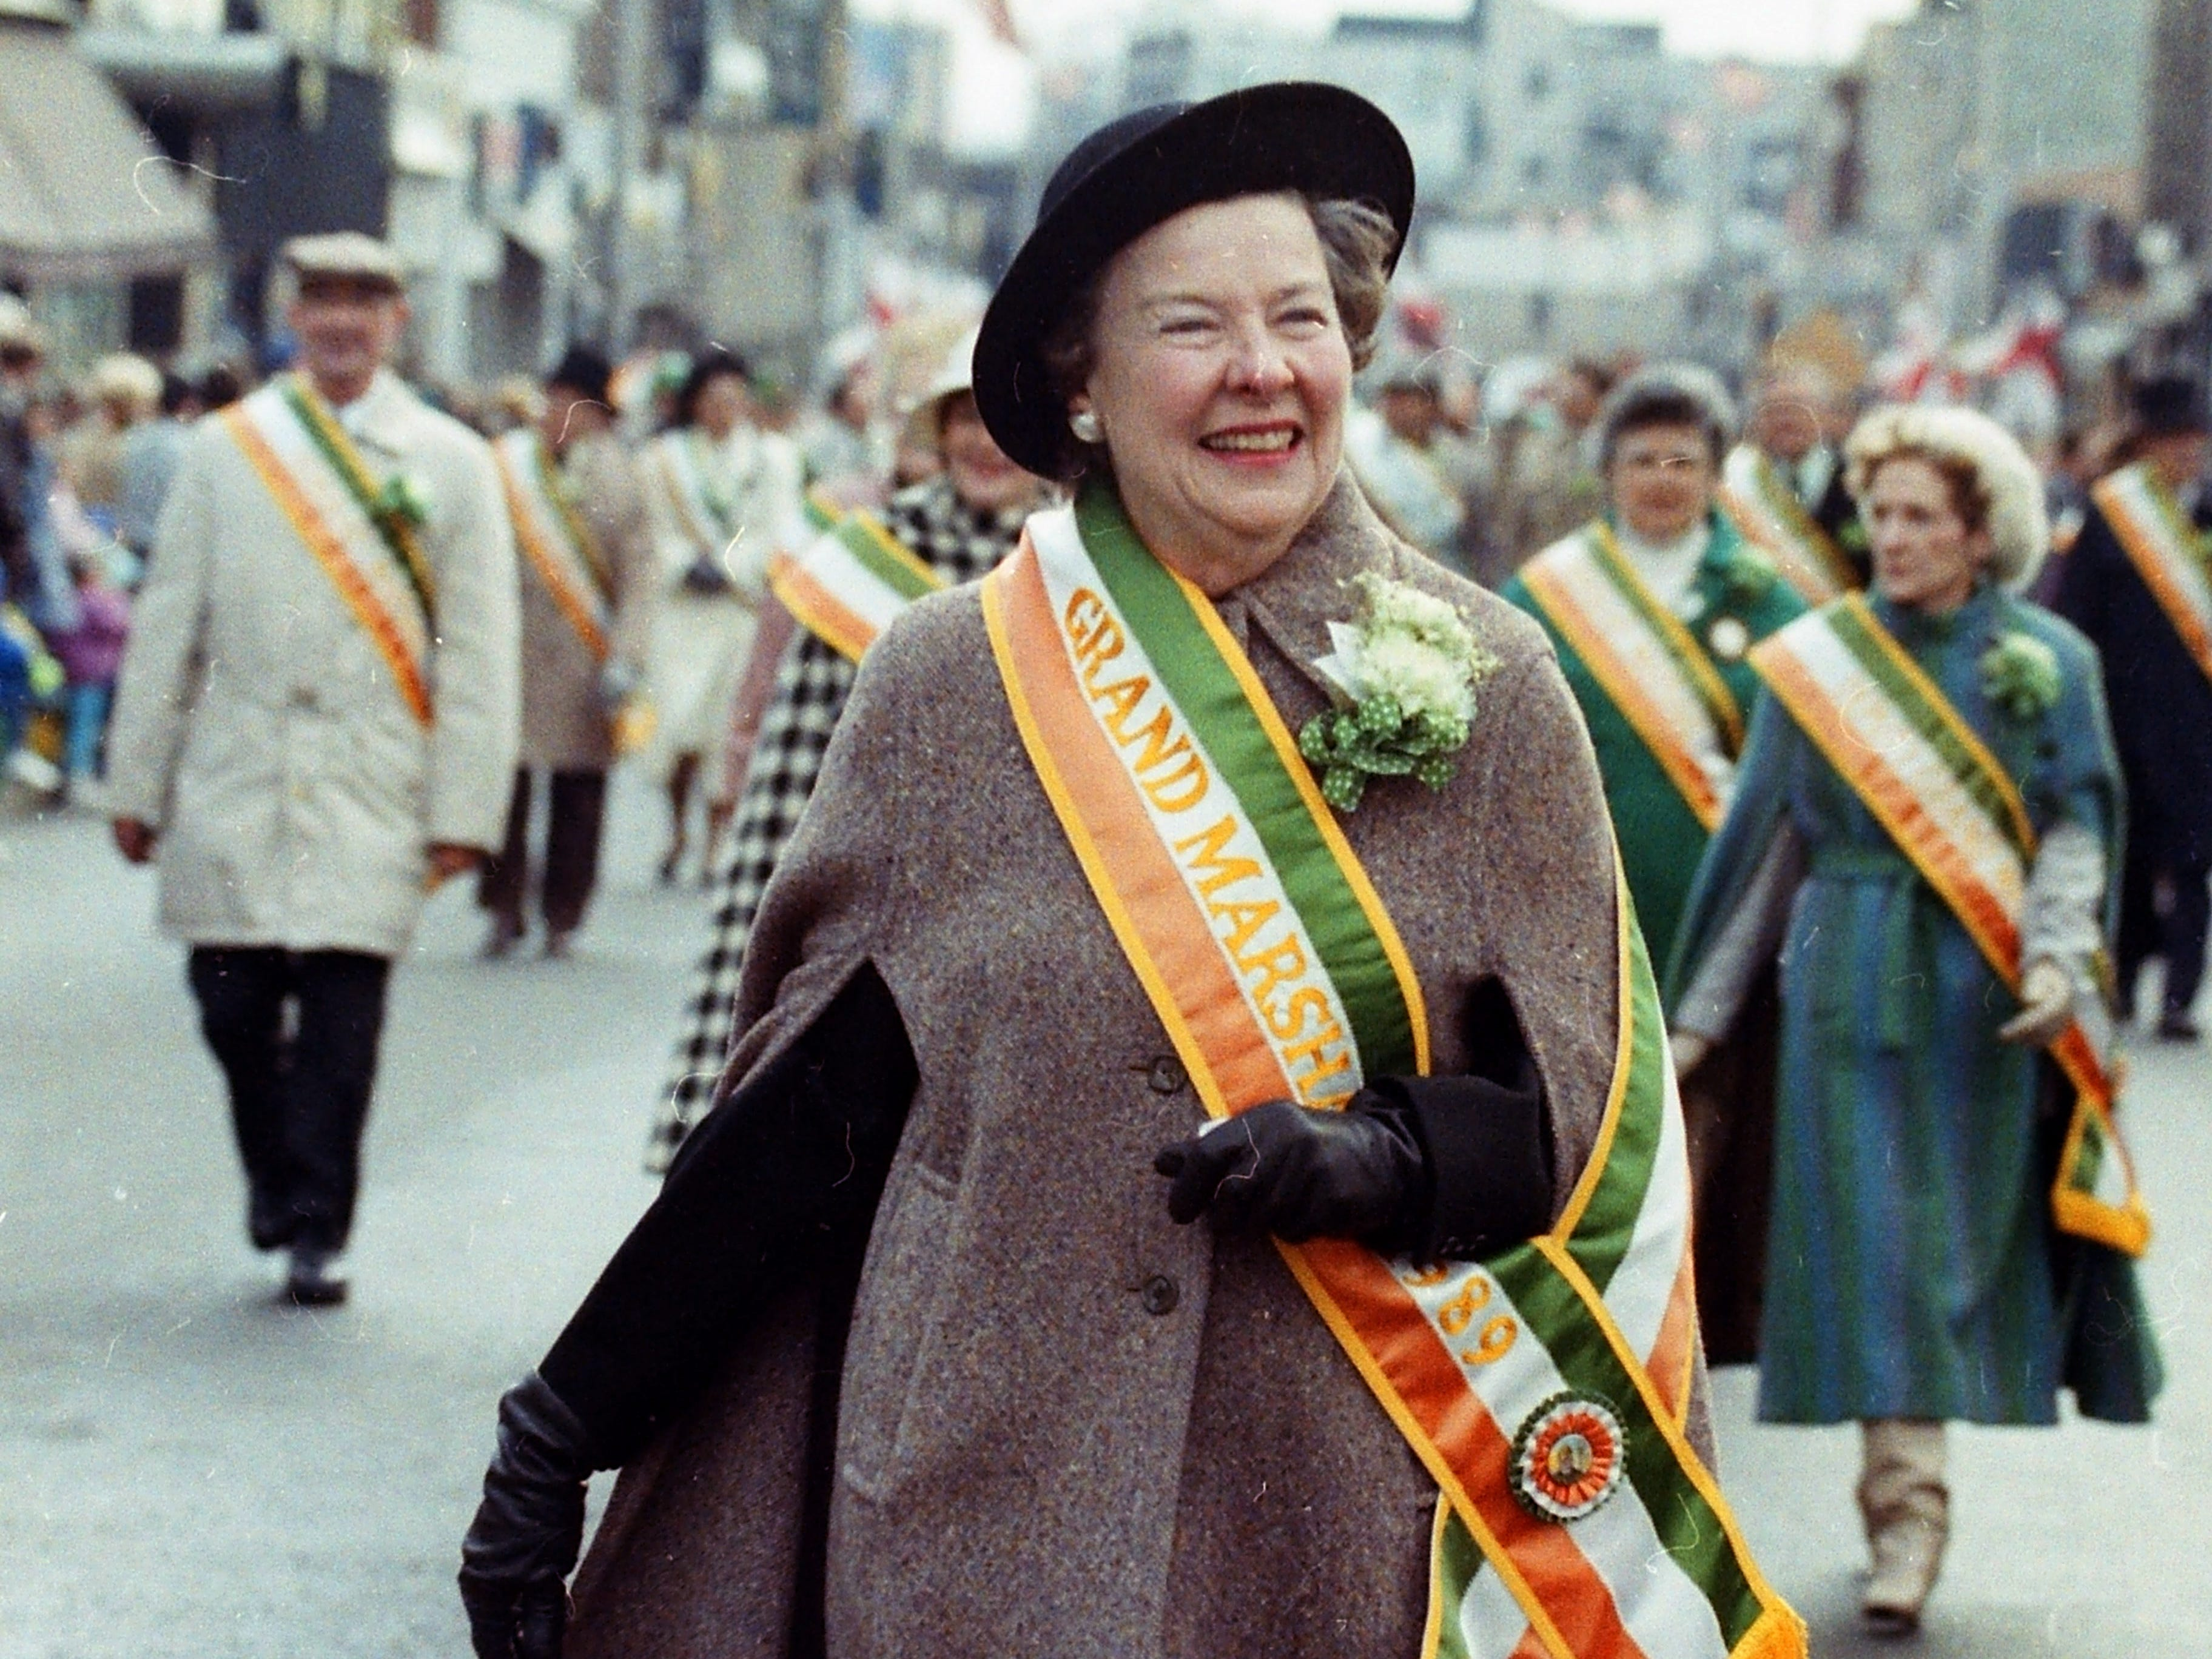 Grand Marshall Margaret Keane. Scenes from the Bergen County St. Patrick's Day Parade down Washington Avenue in Bergenfield, March 12, 1989.